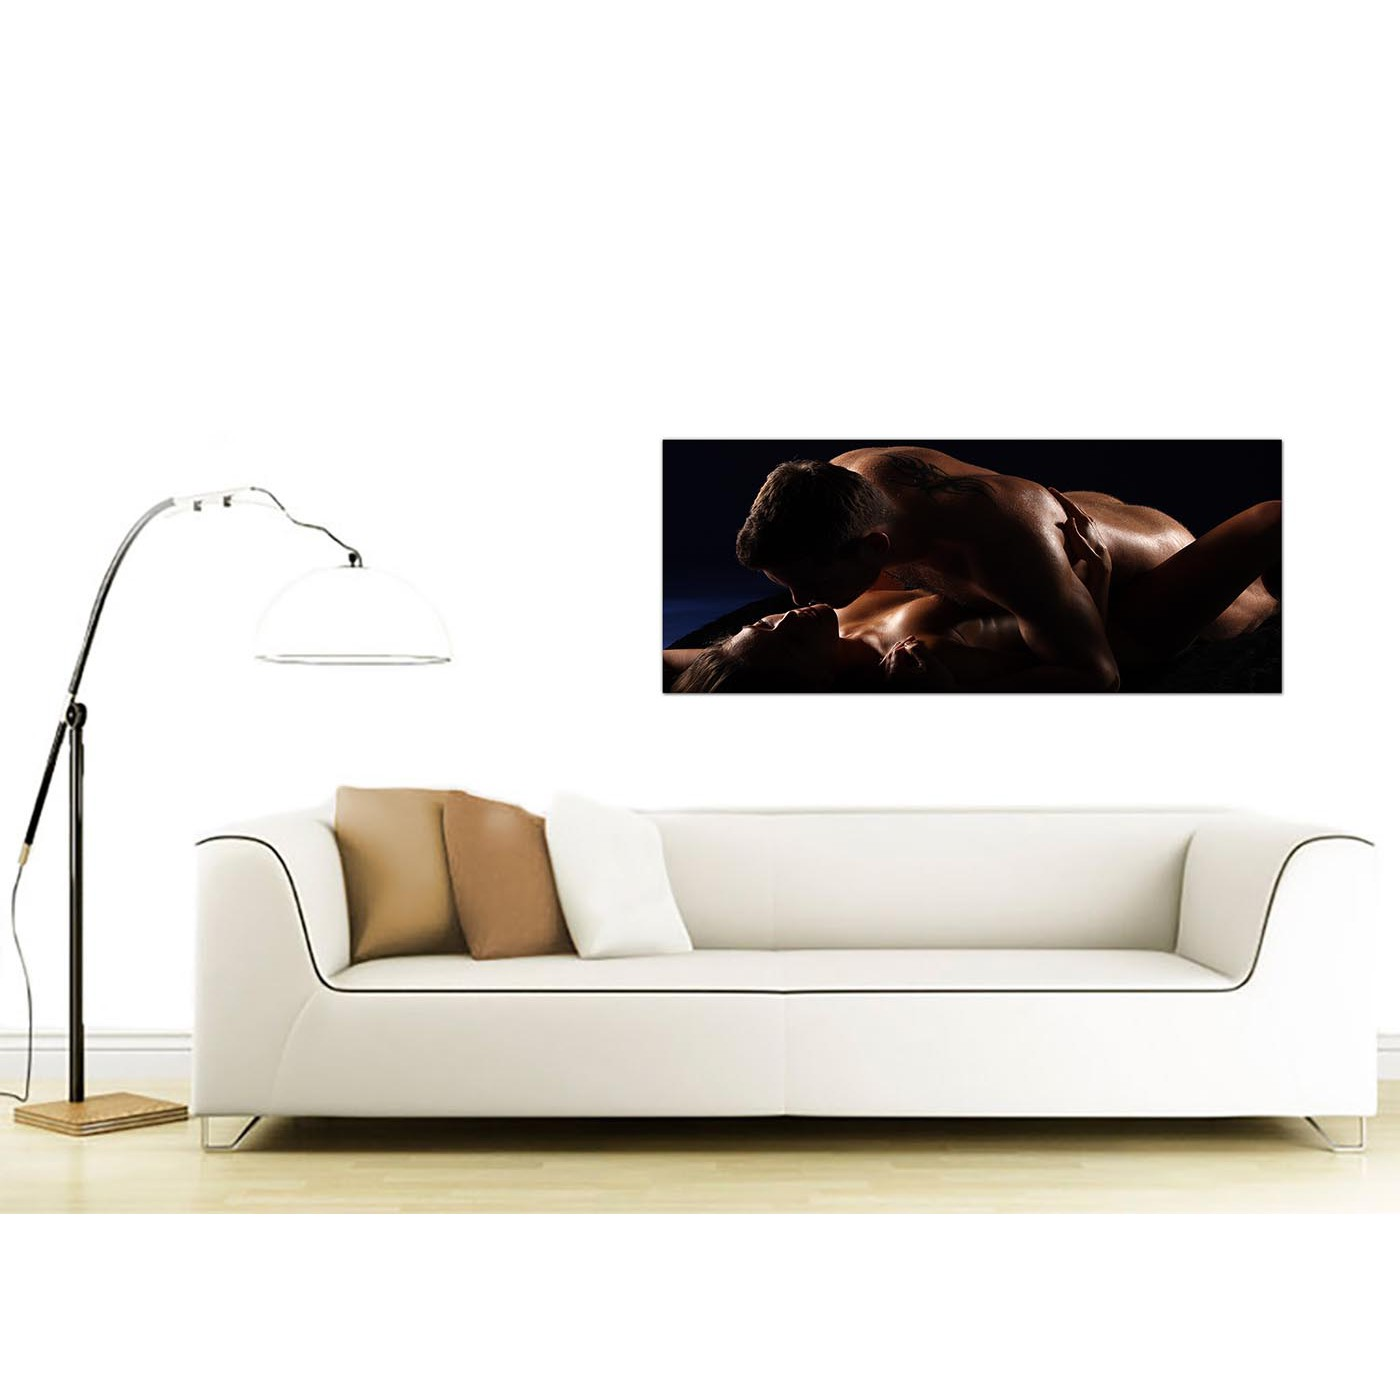 Large Brown Canvas Wall Art of a Bedroom Couple